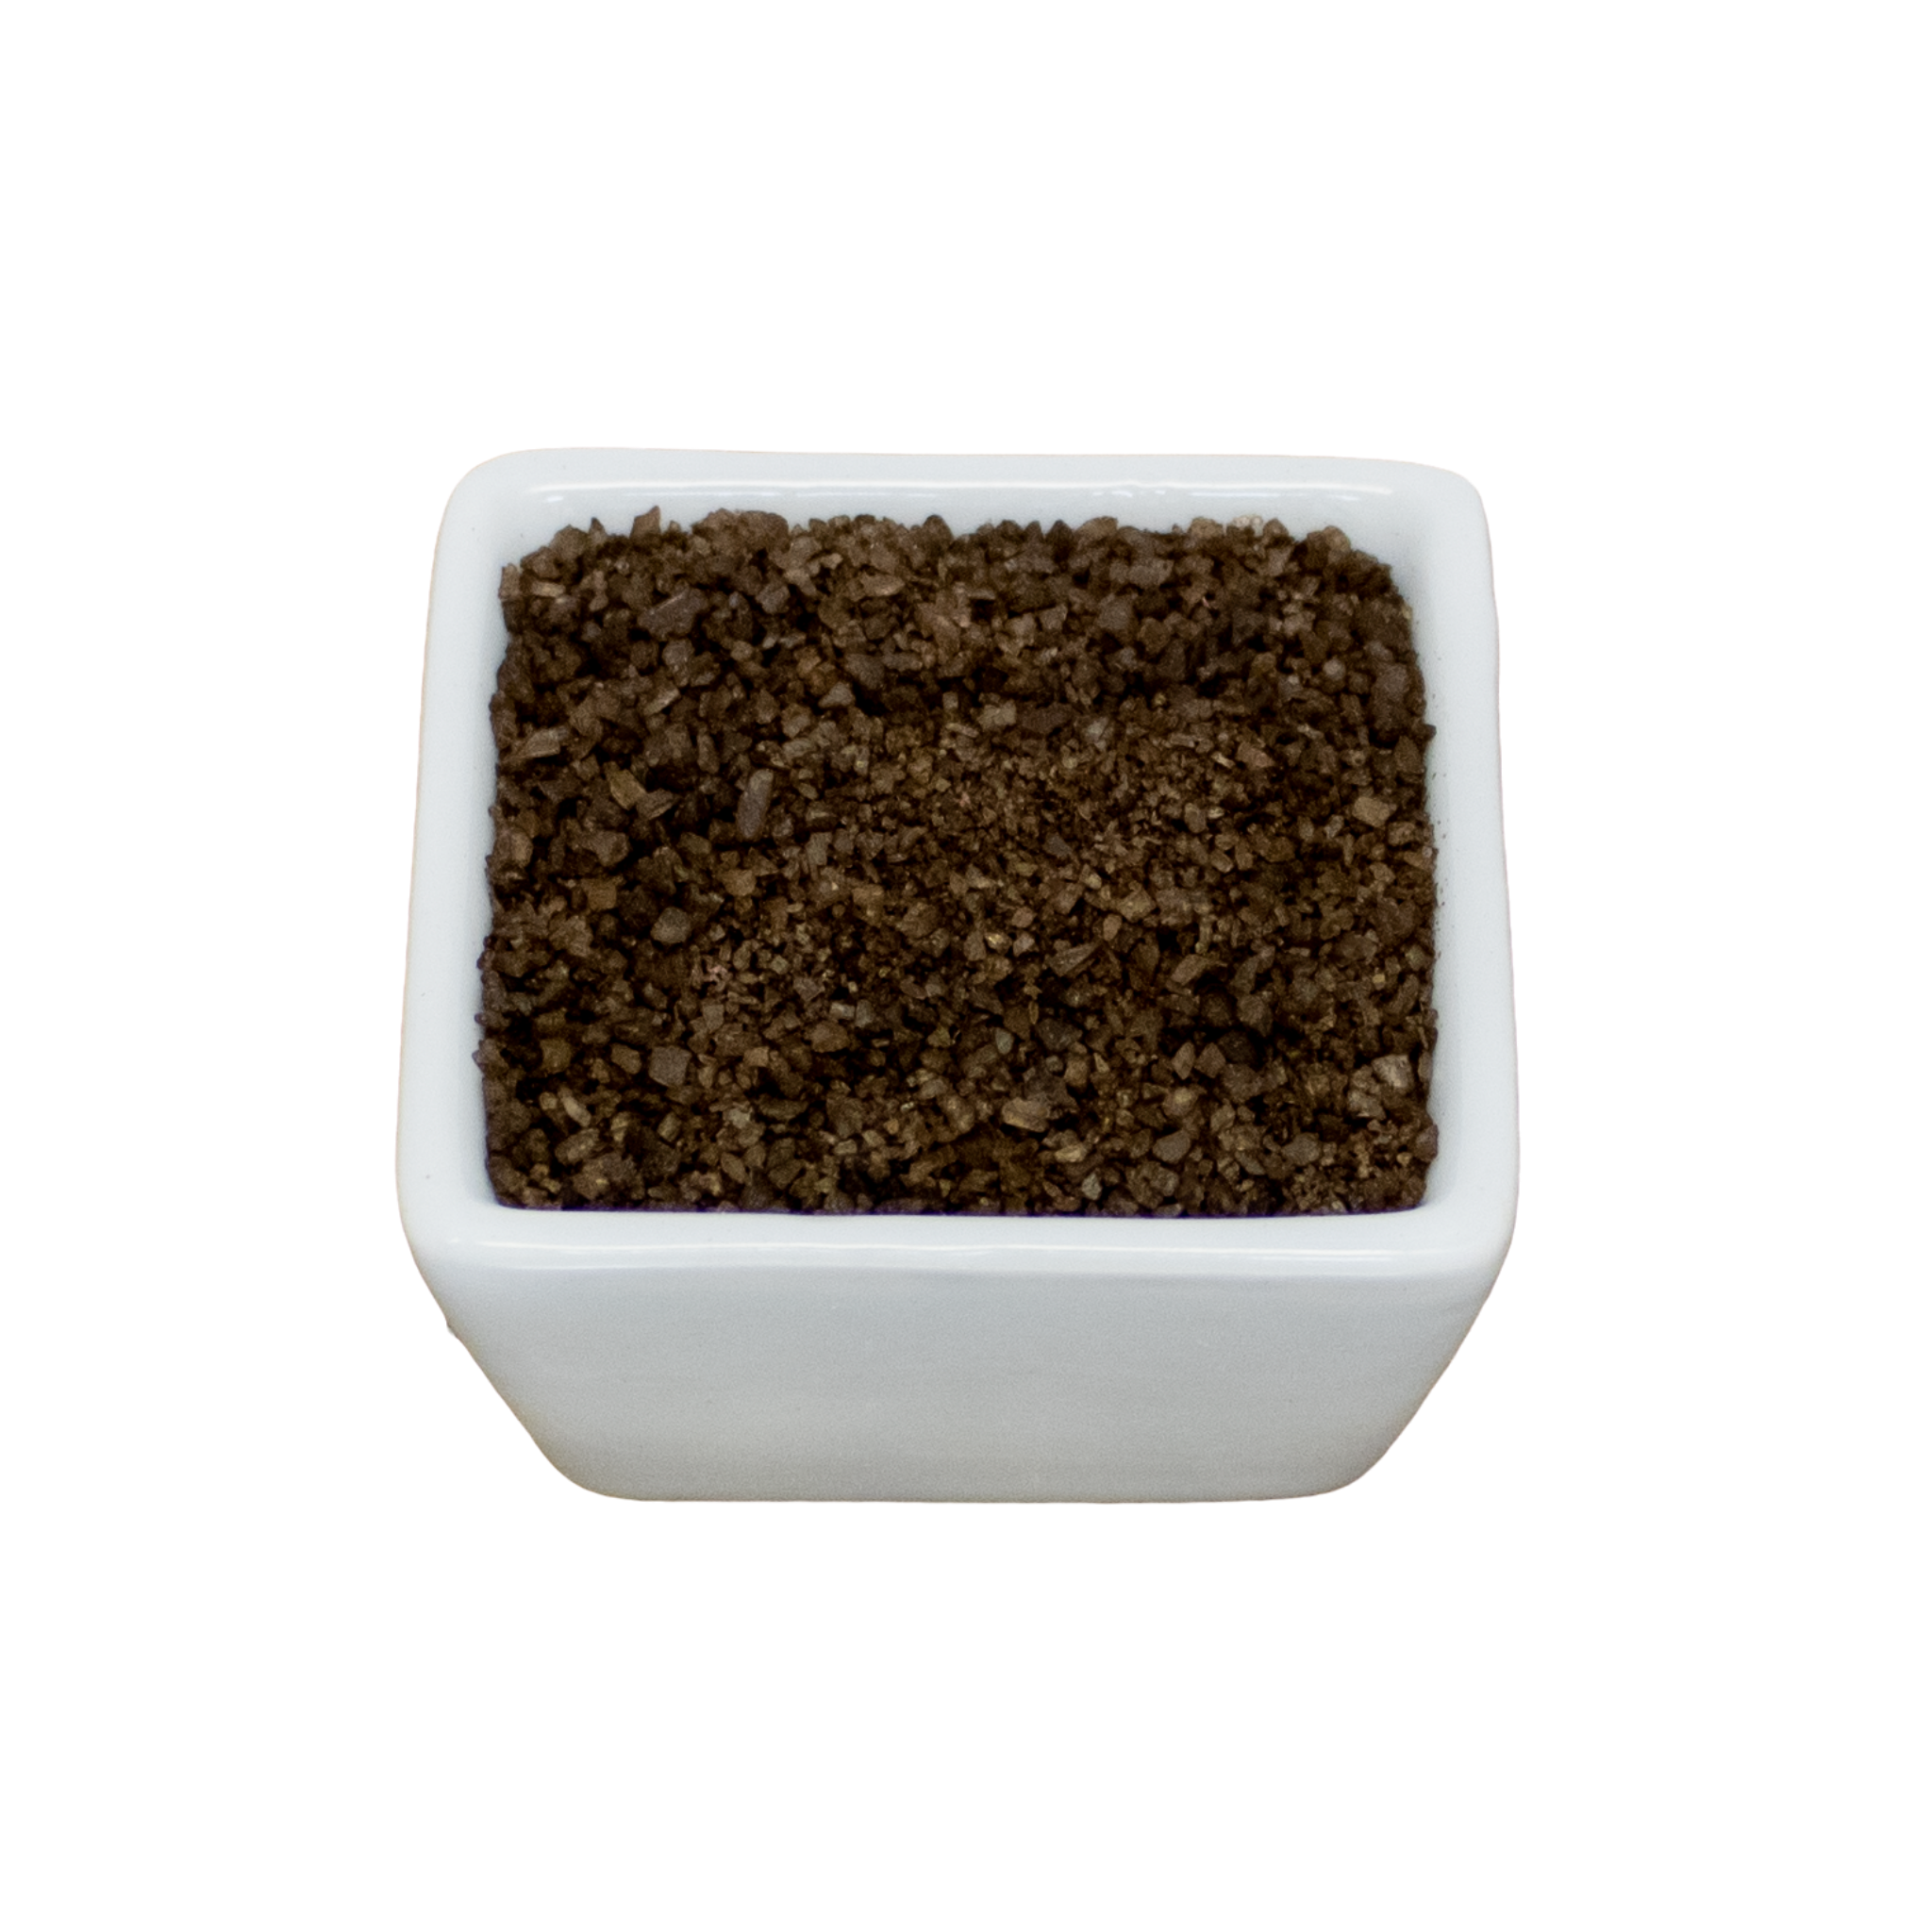 Salt, Smoked Alderwood Sea Salt (Fine)